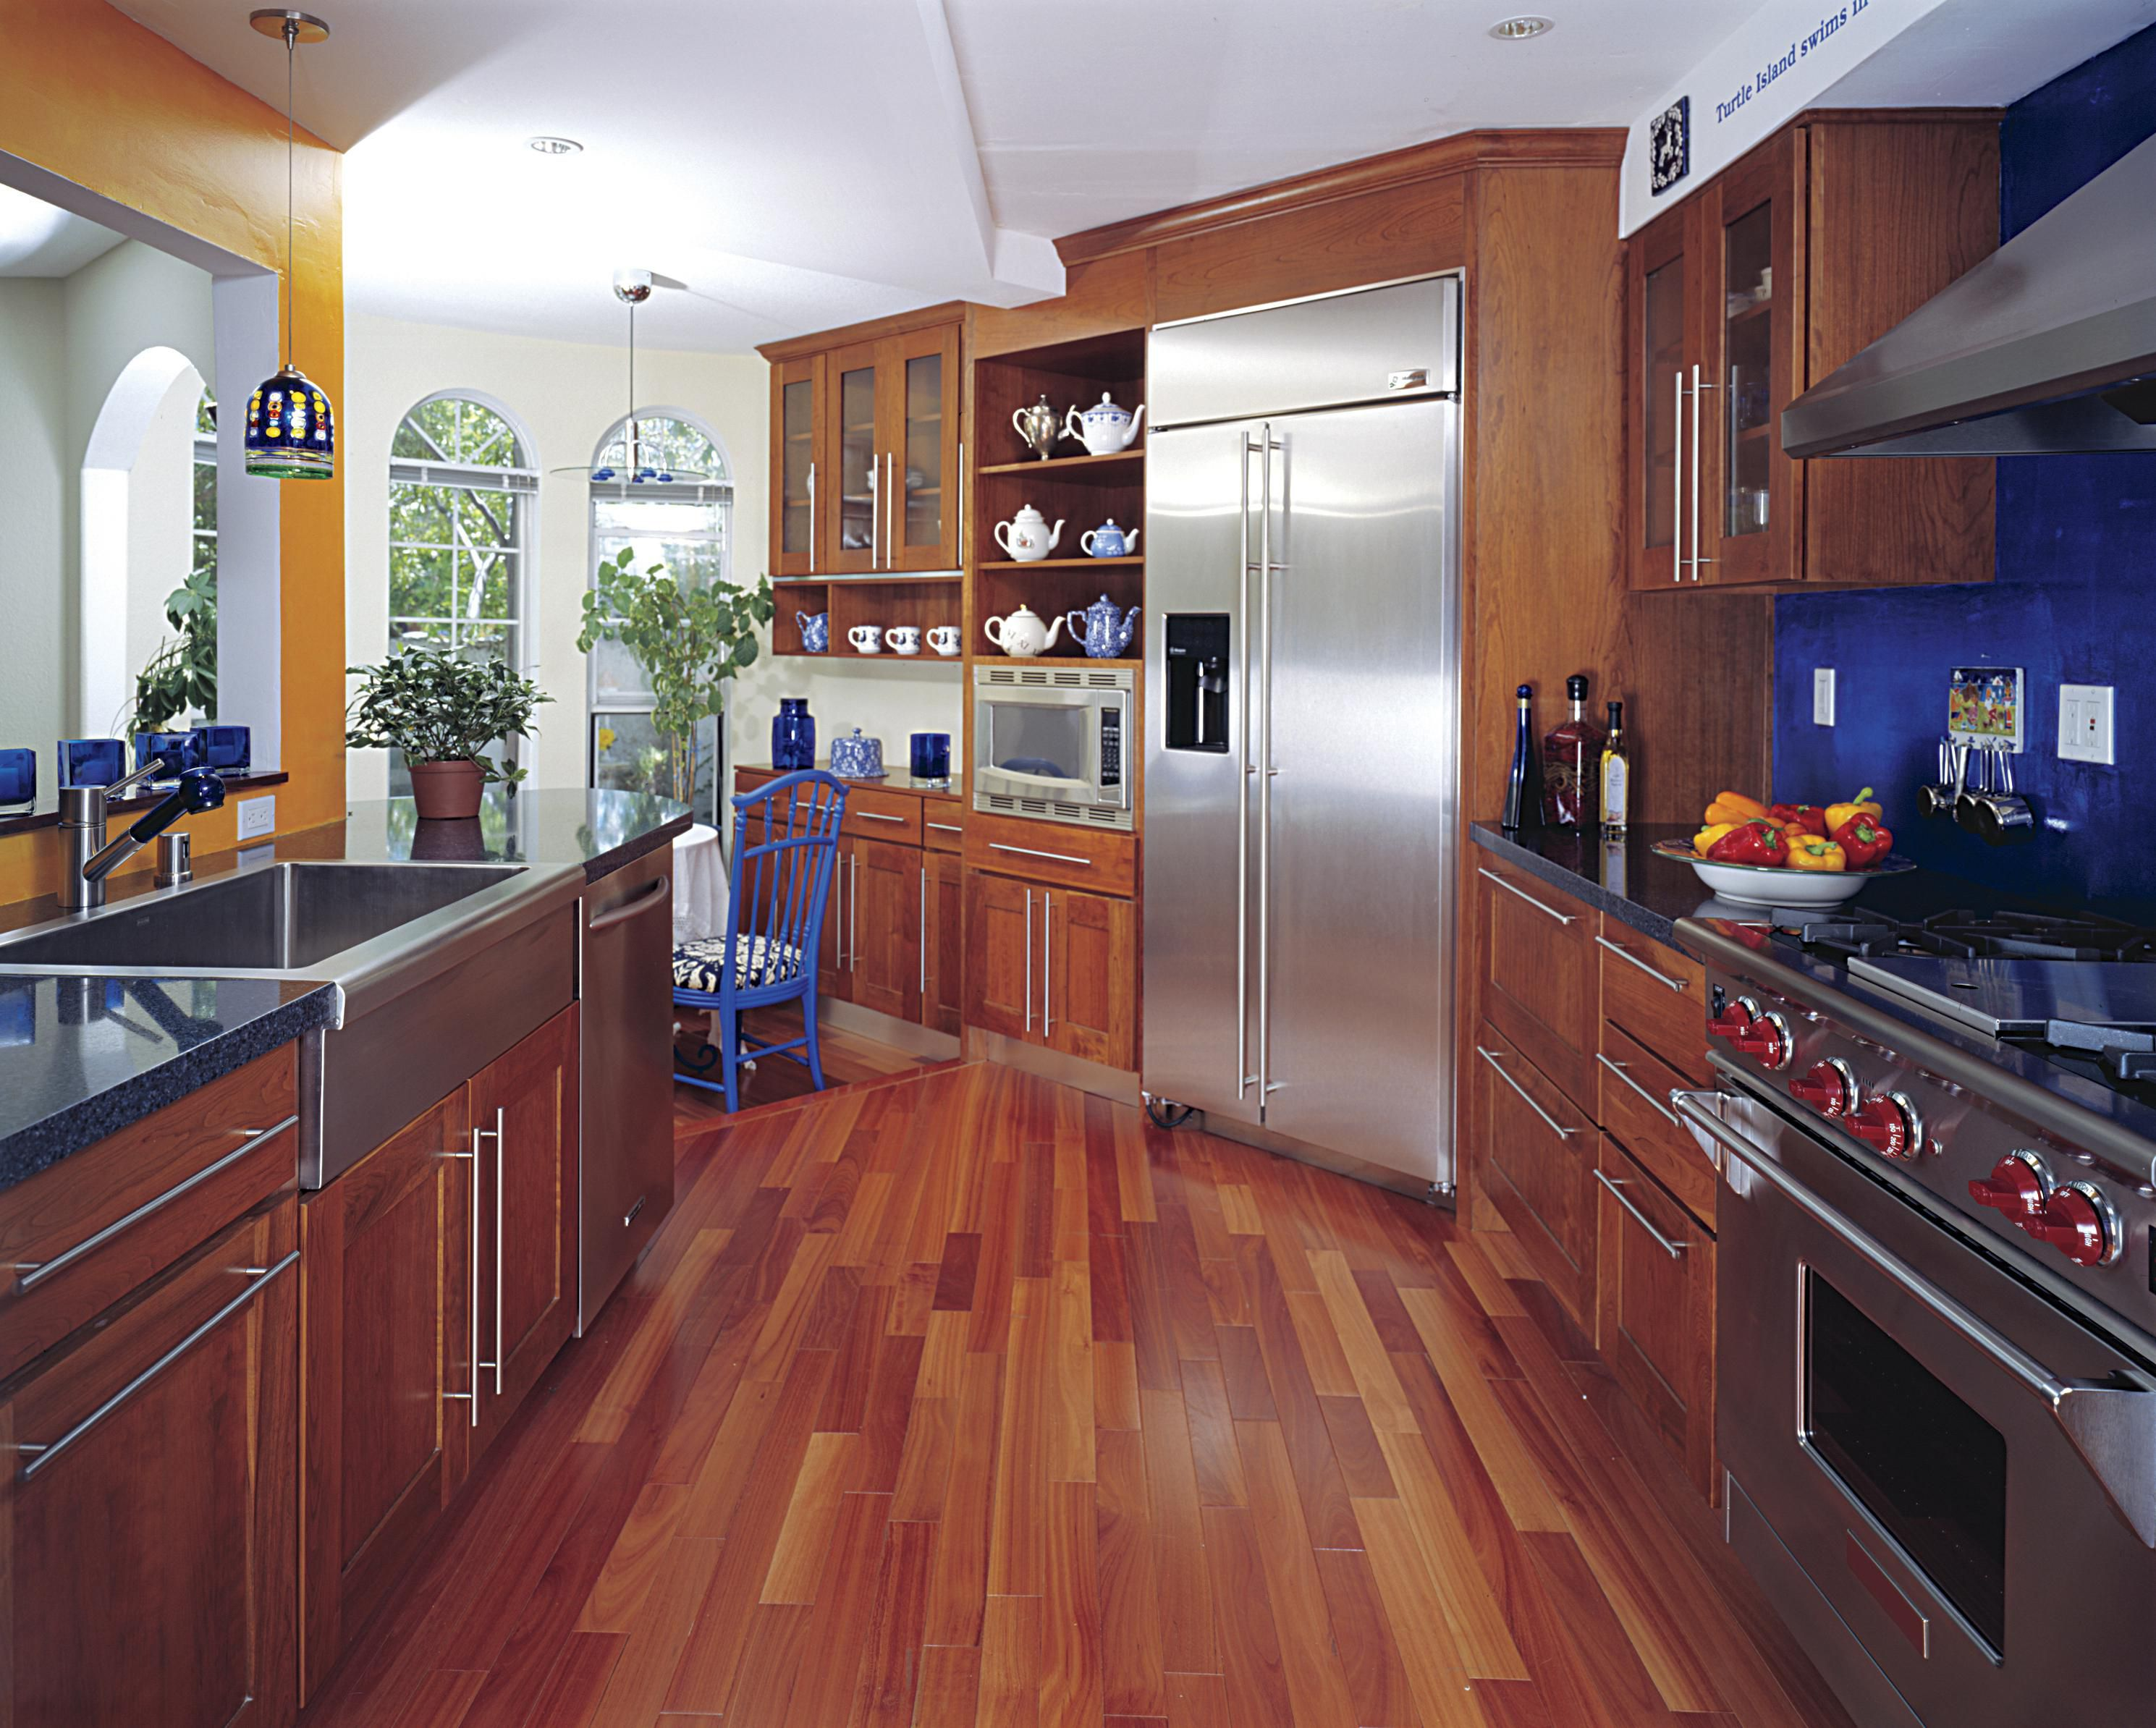 Kitchen Cabinet Wood Reconditioning Hardwood Floor In A Kitchen Is This Allowed